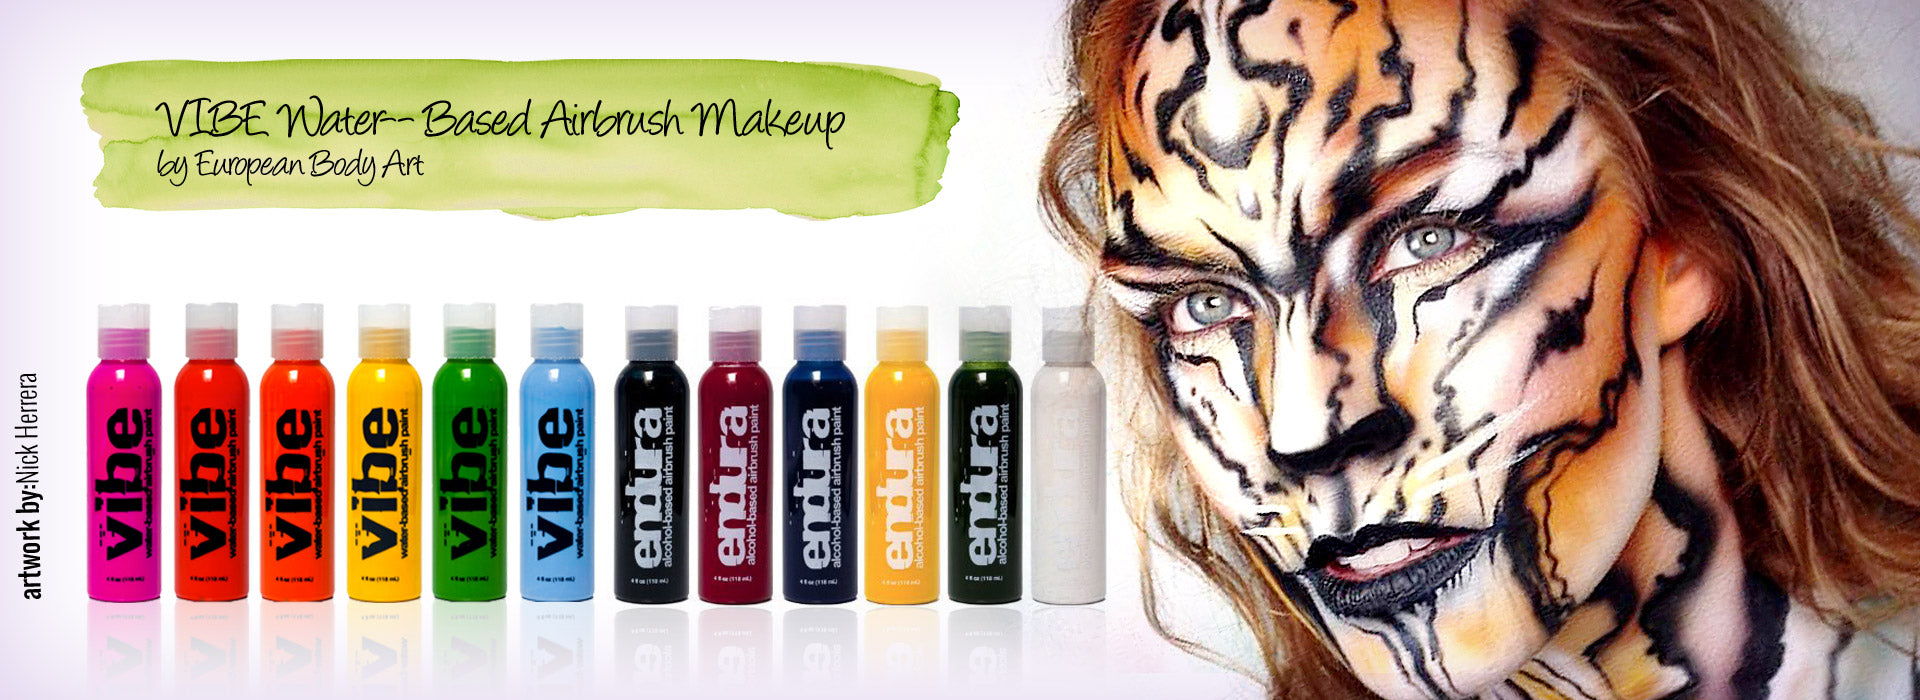 VIBE Water- Based Airbrush Makeup